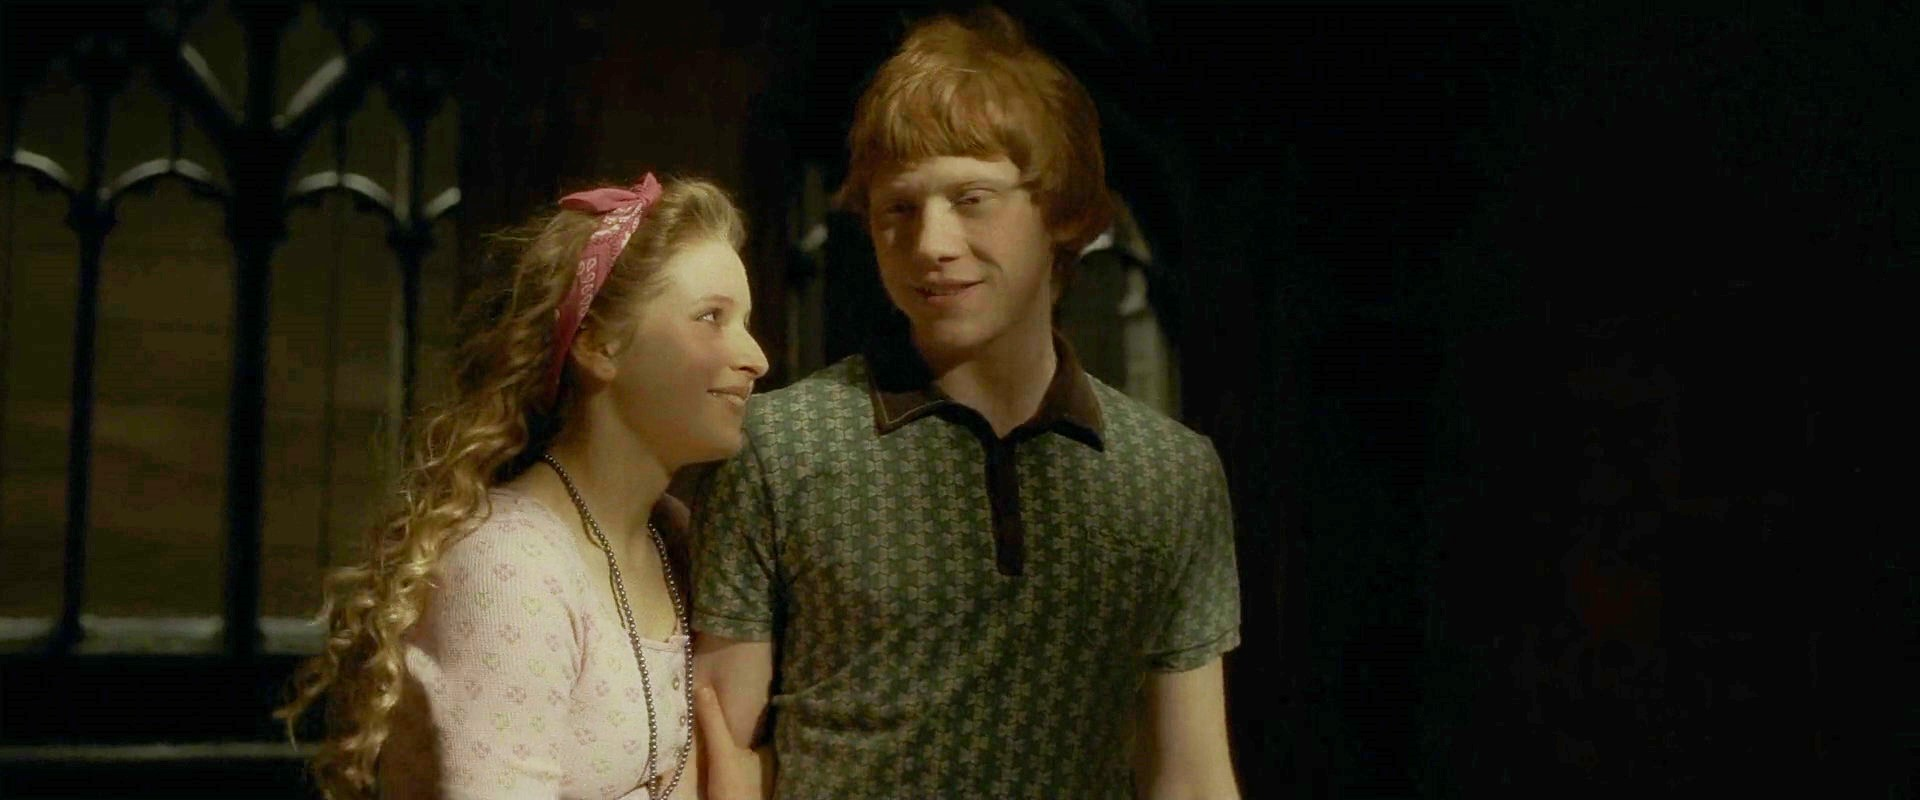 Ron weasley dating